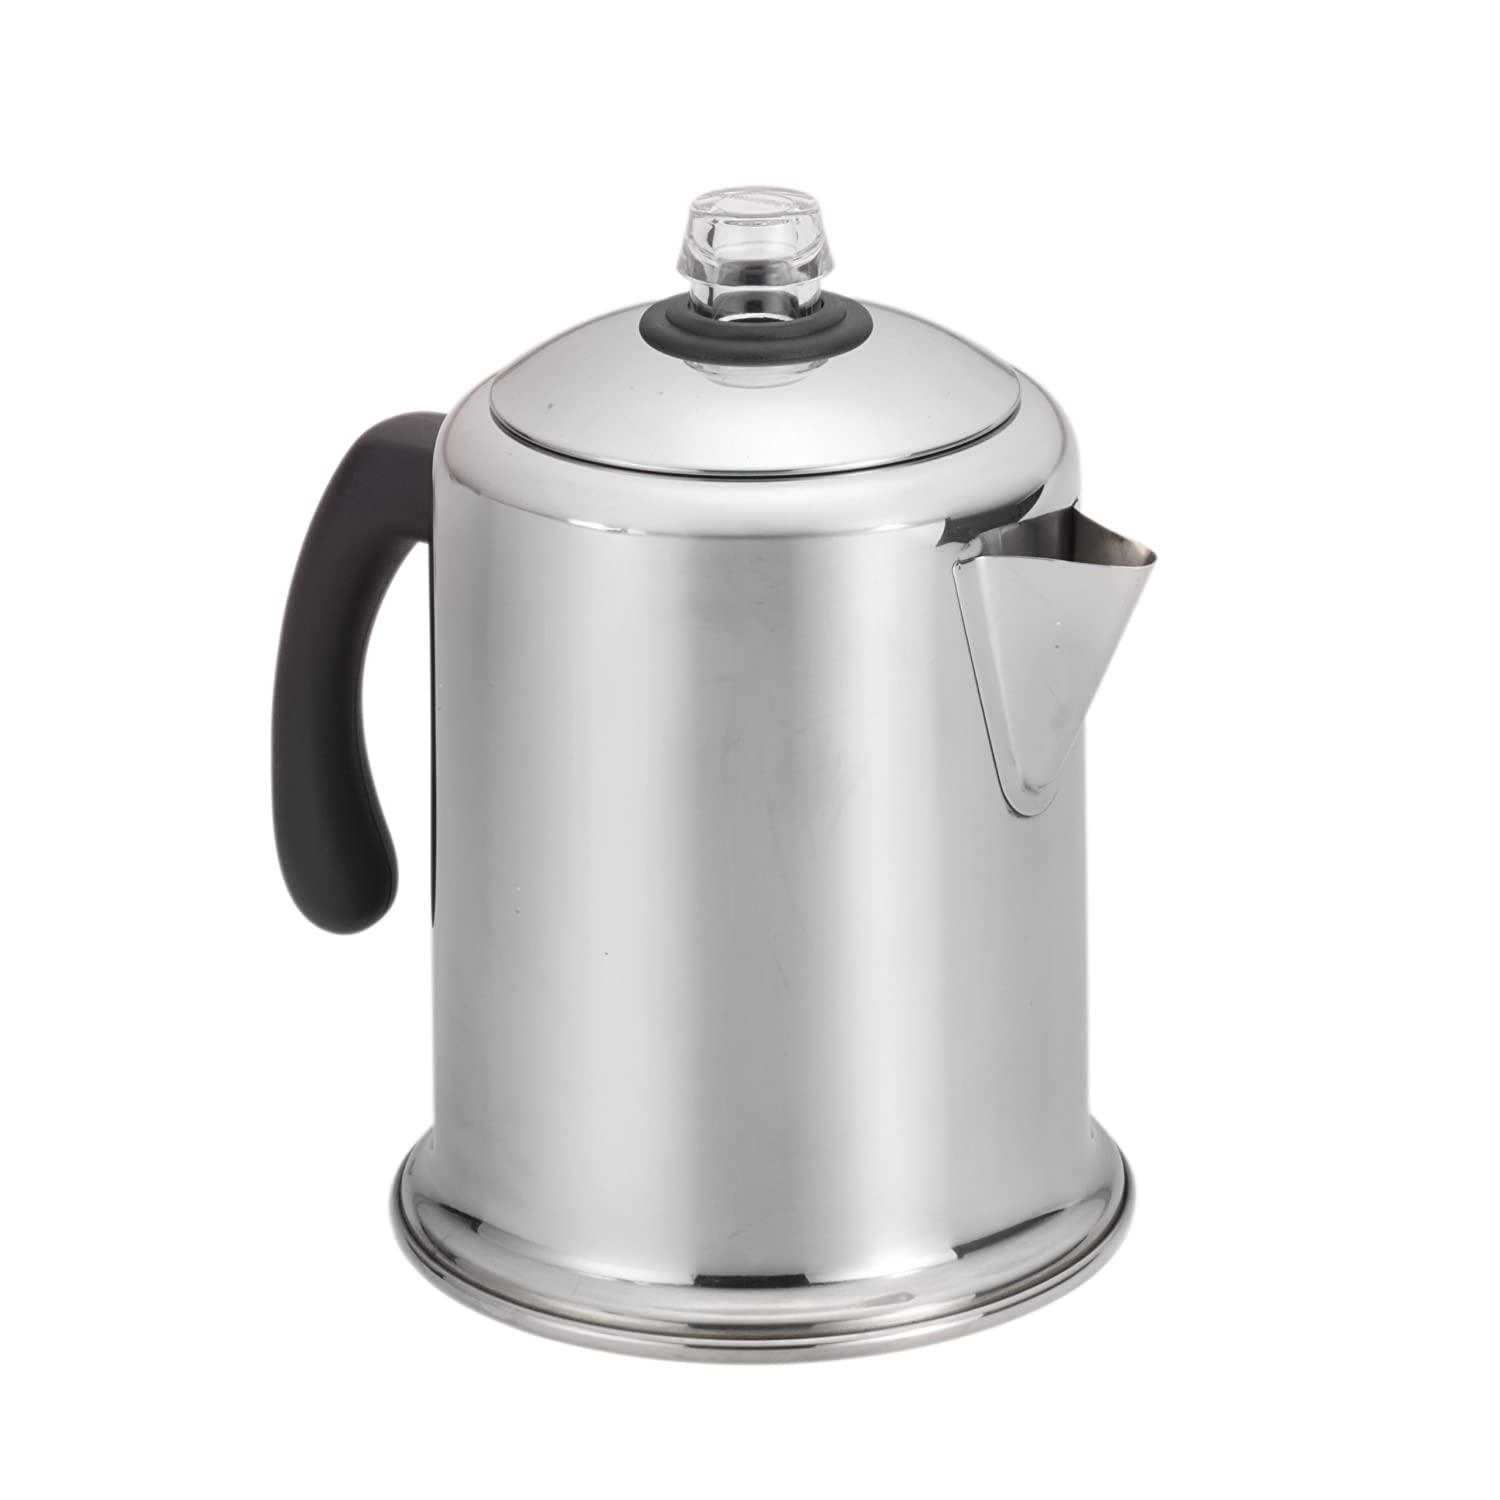 Farberware S Steel 8-Cup Coffee Maker Percolator Stove Top Brewer Maker Moka Pot eBay